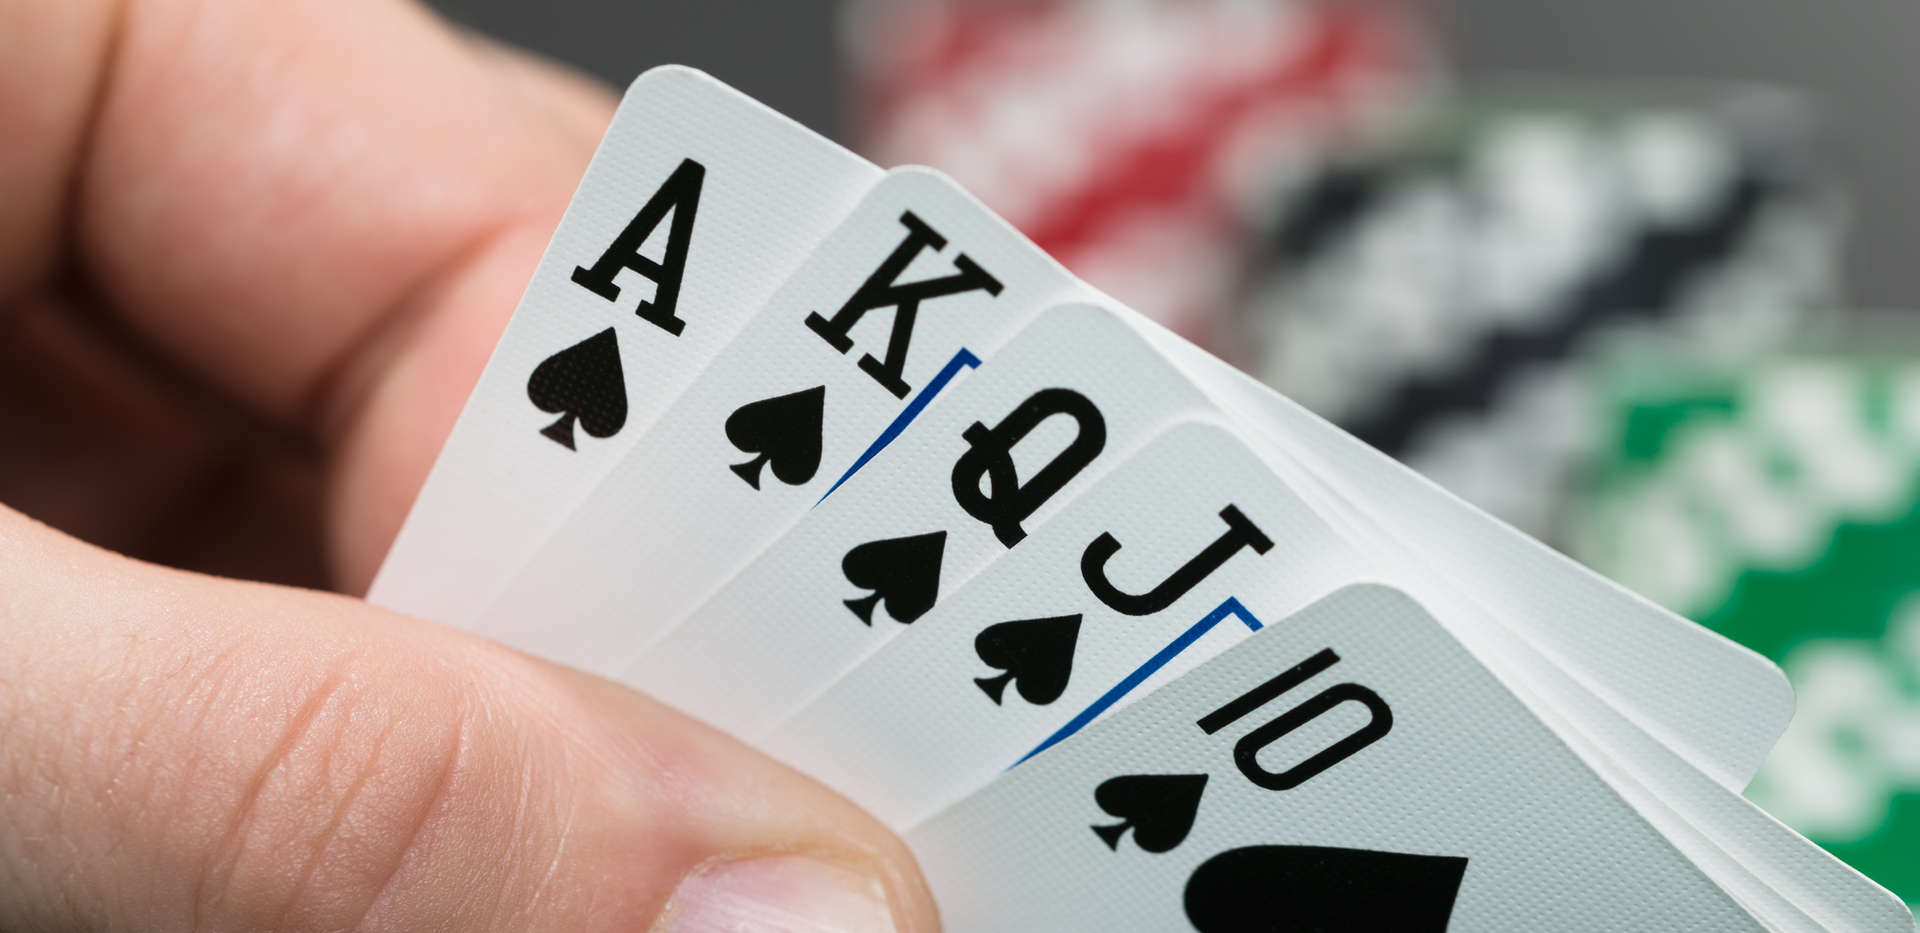 The odds of getting a royal flush are exactly 1 in 649,740.